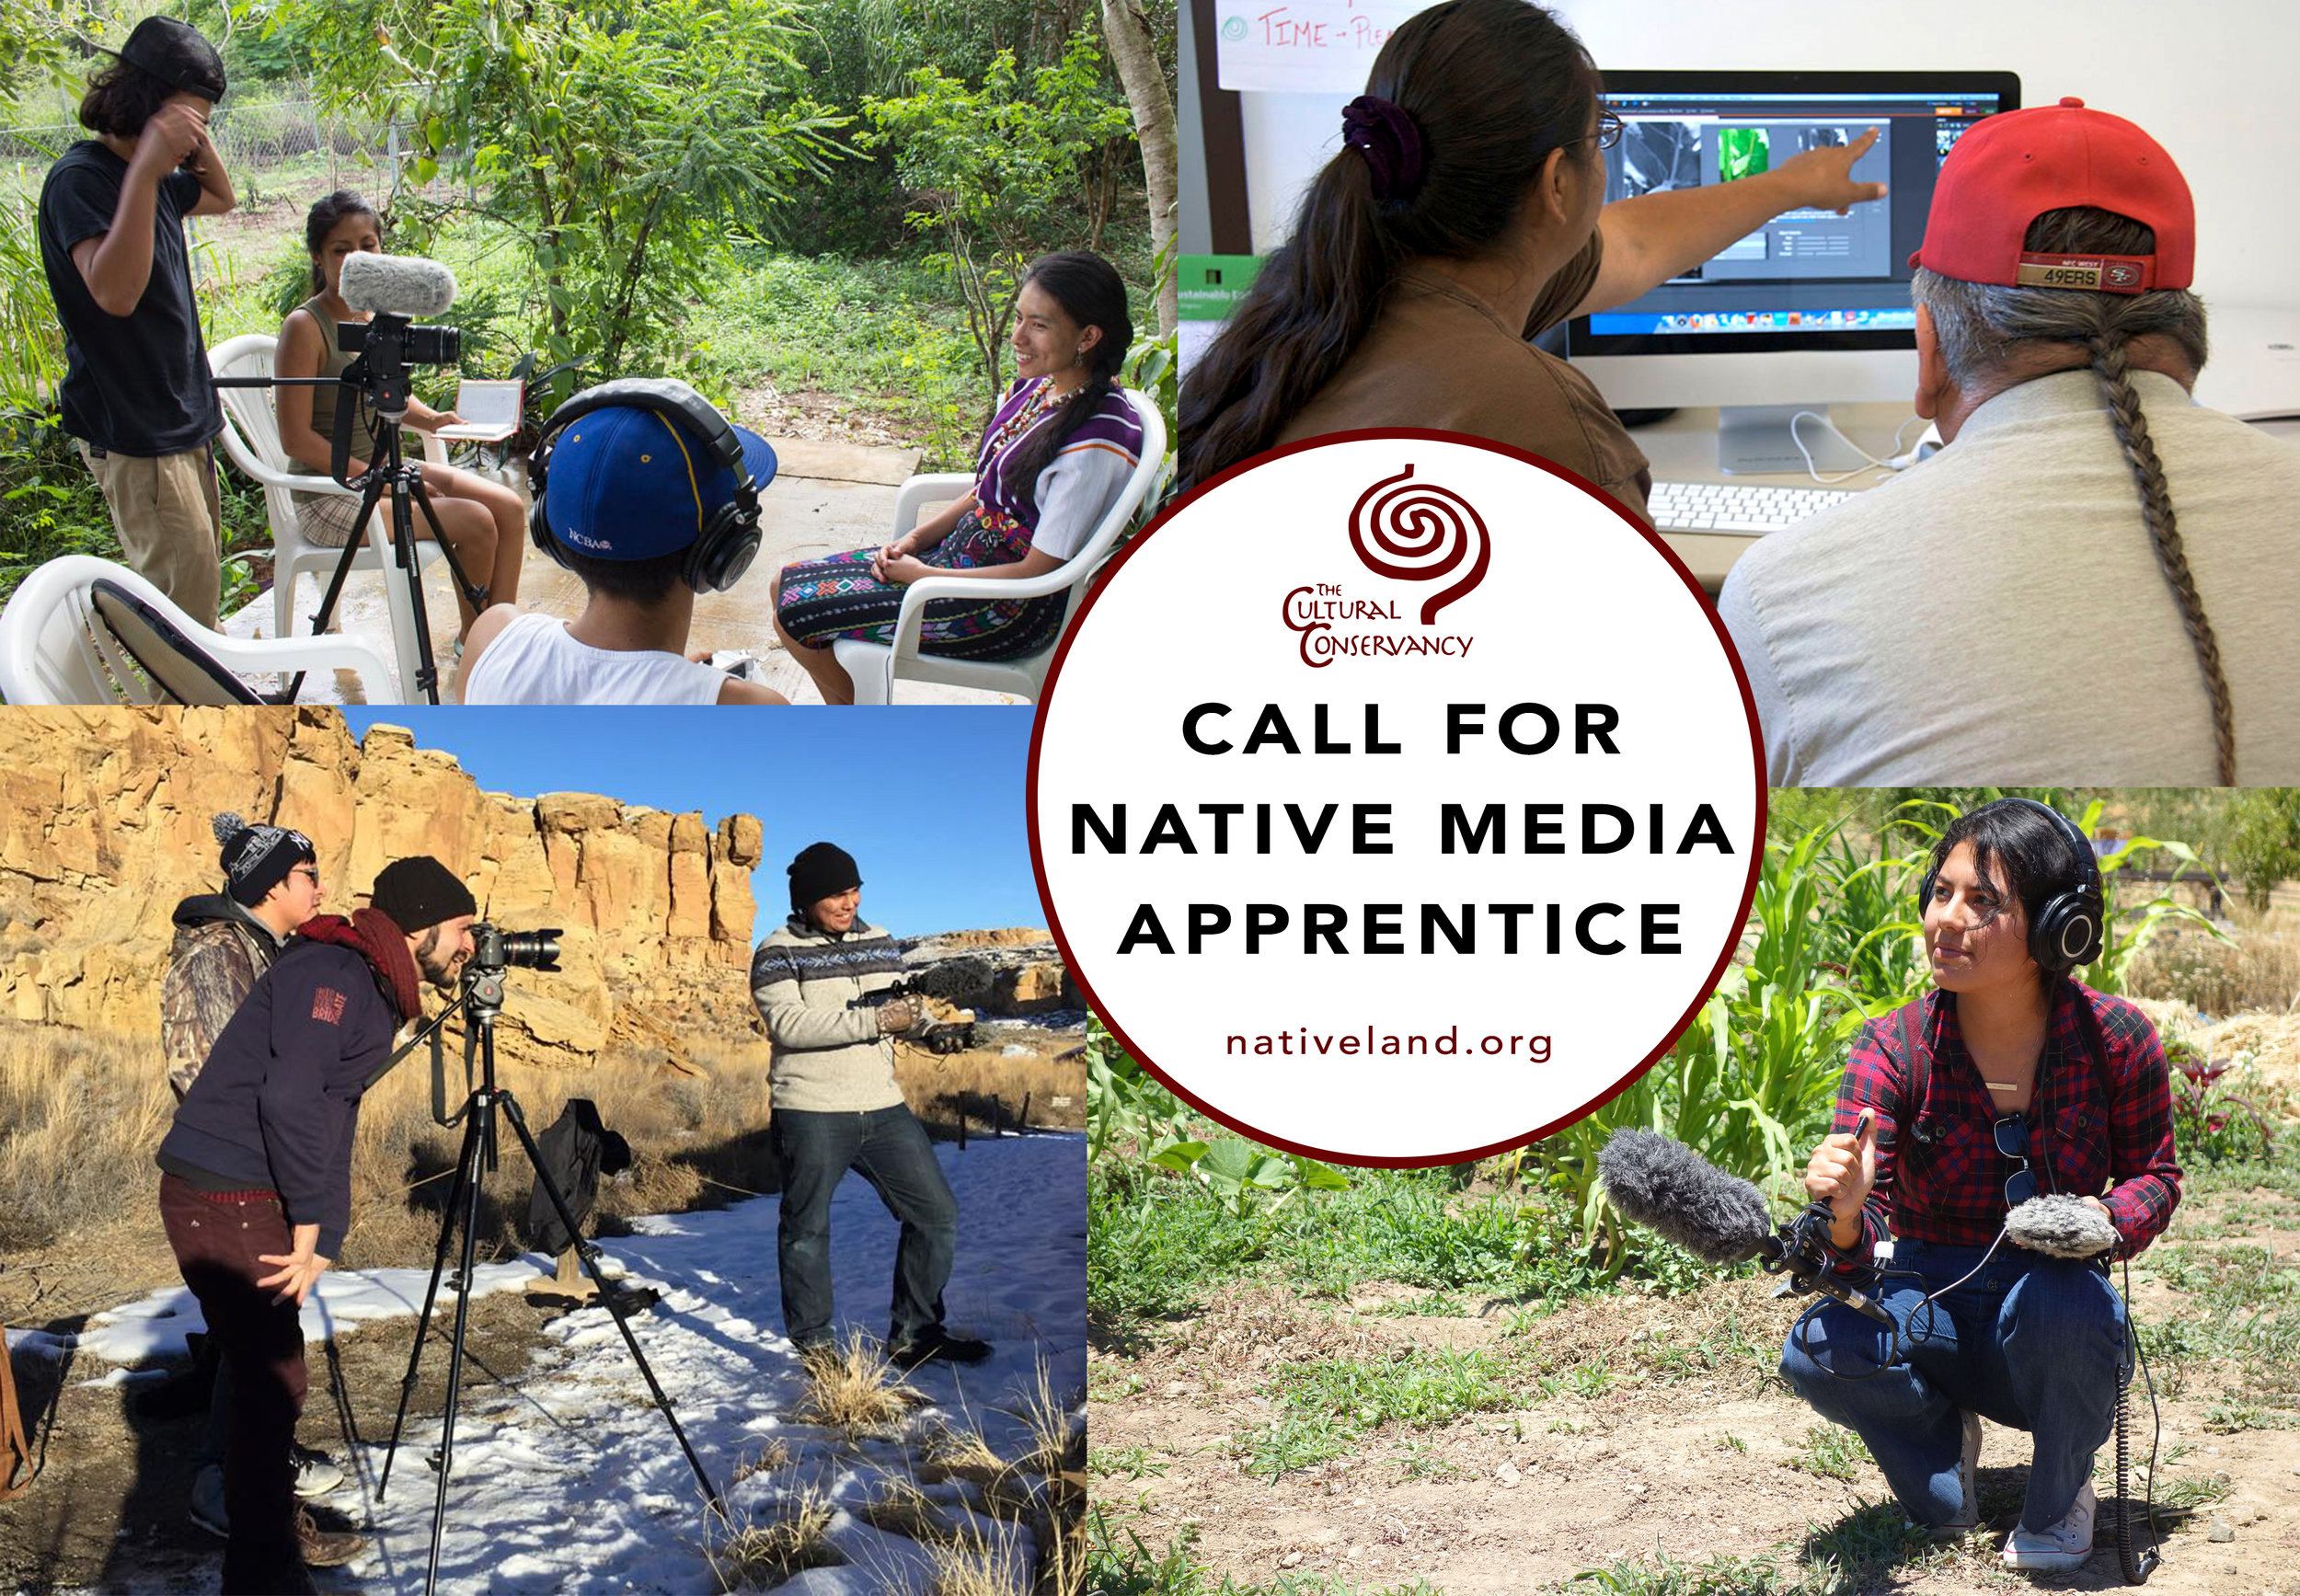 Native Media Apprentice Call collage.jpg